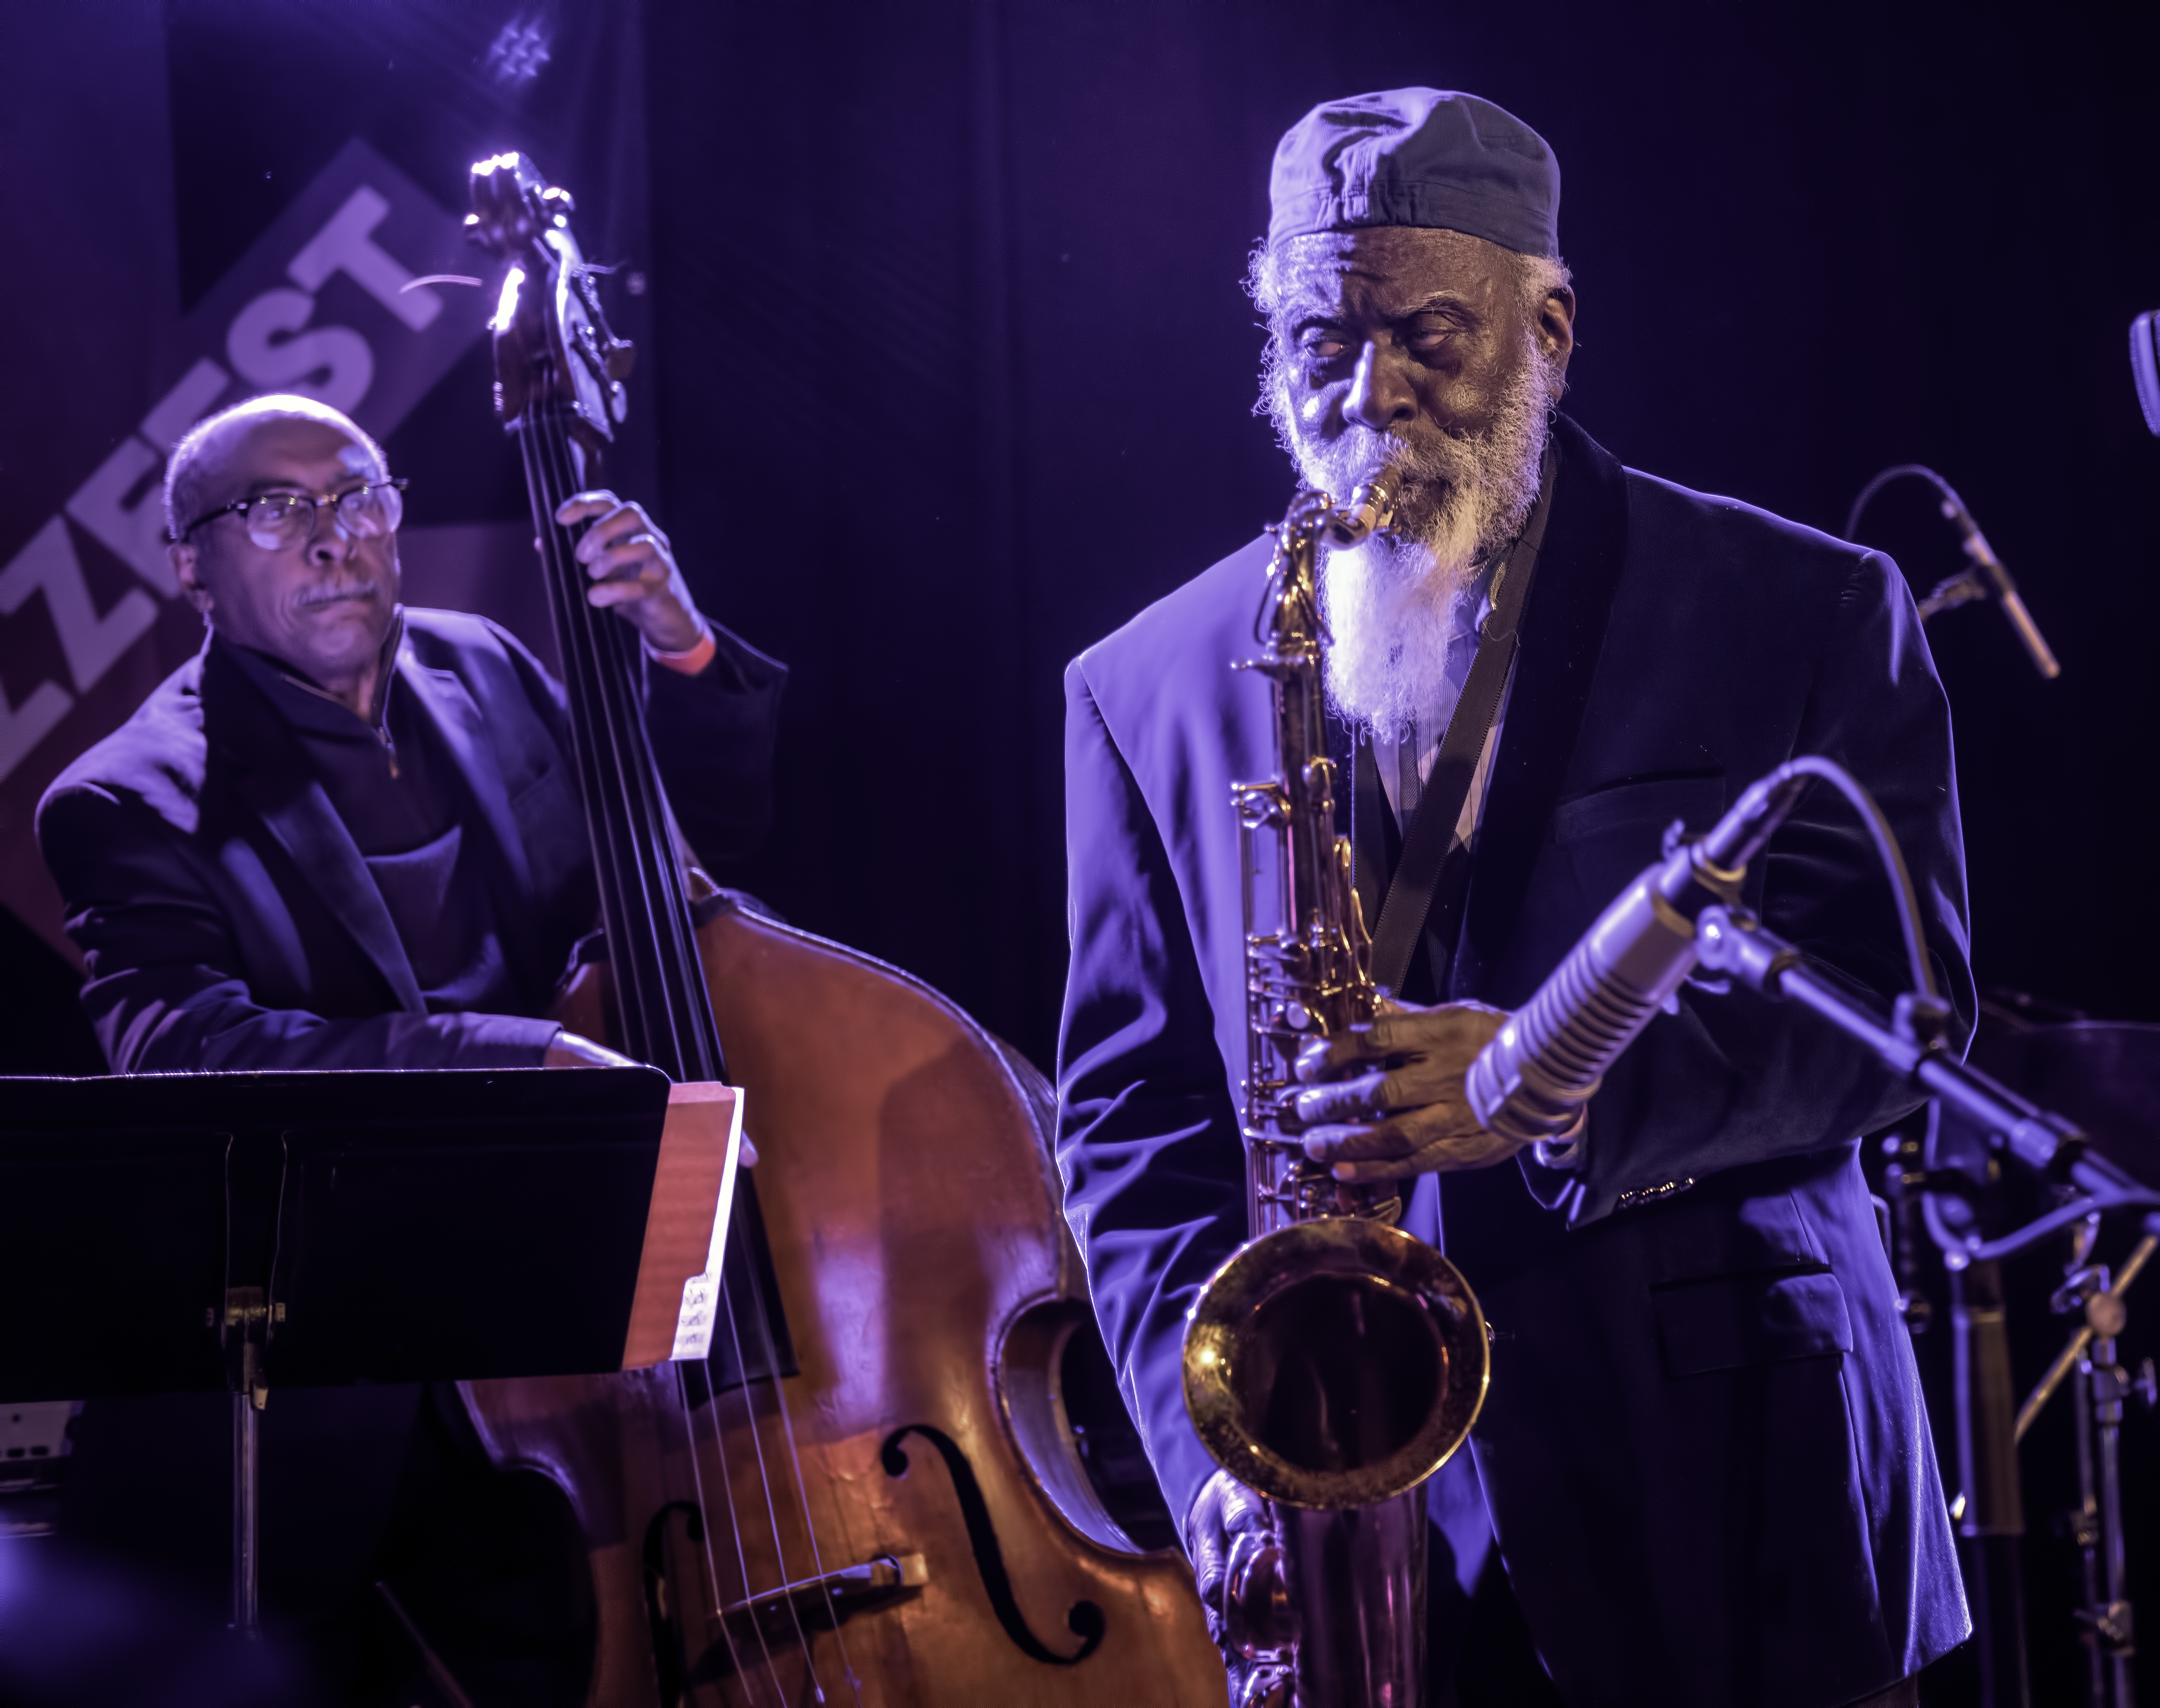 James King and Pharoah Sanders with Gary Bartz Celebrating the 50th Anniversary of 'Another Earth' at the NYC Winter Jazzfest 2019